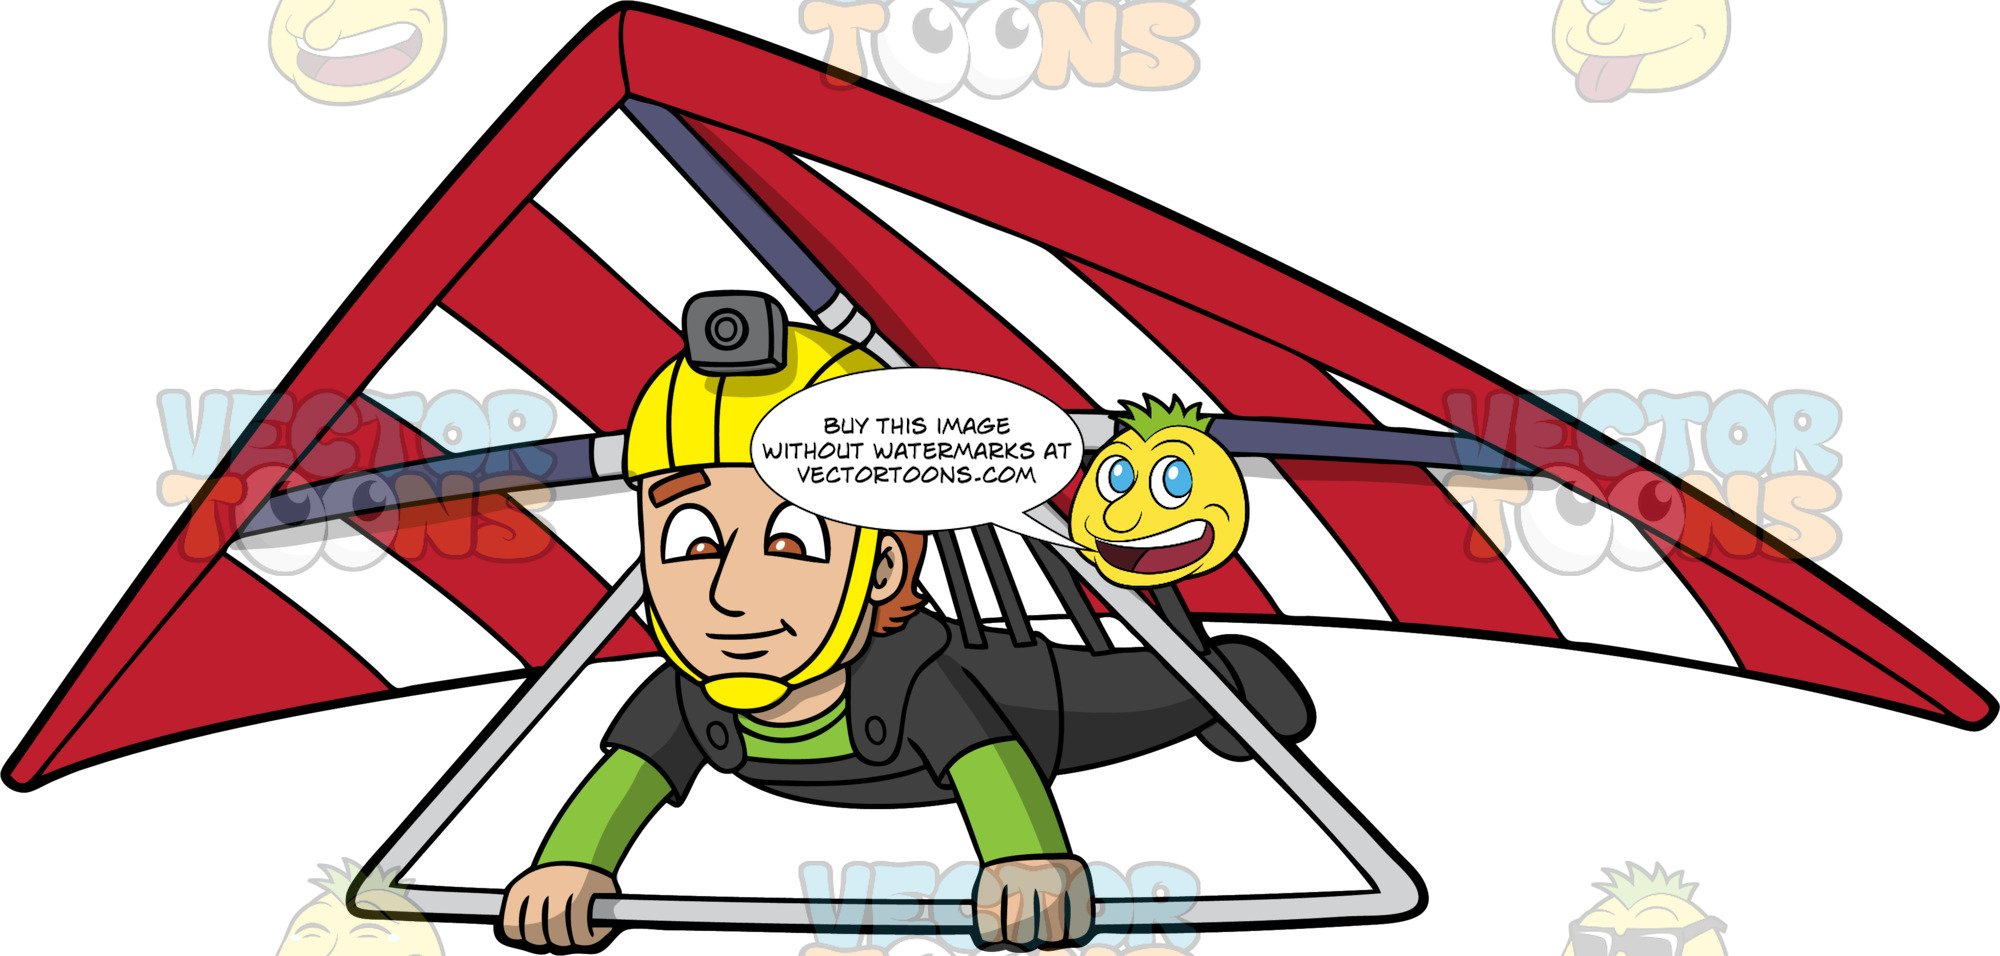 Clipart hang glider image freeuse library A Man Gliding Through The Air On His Hang Glider image freeuse library